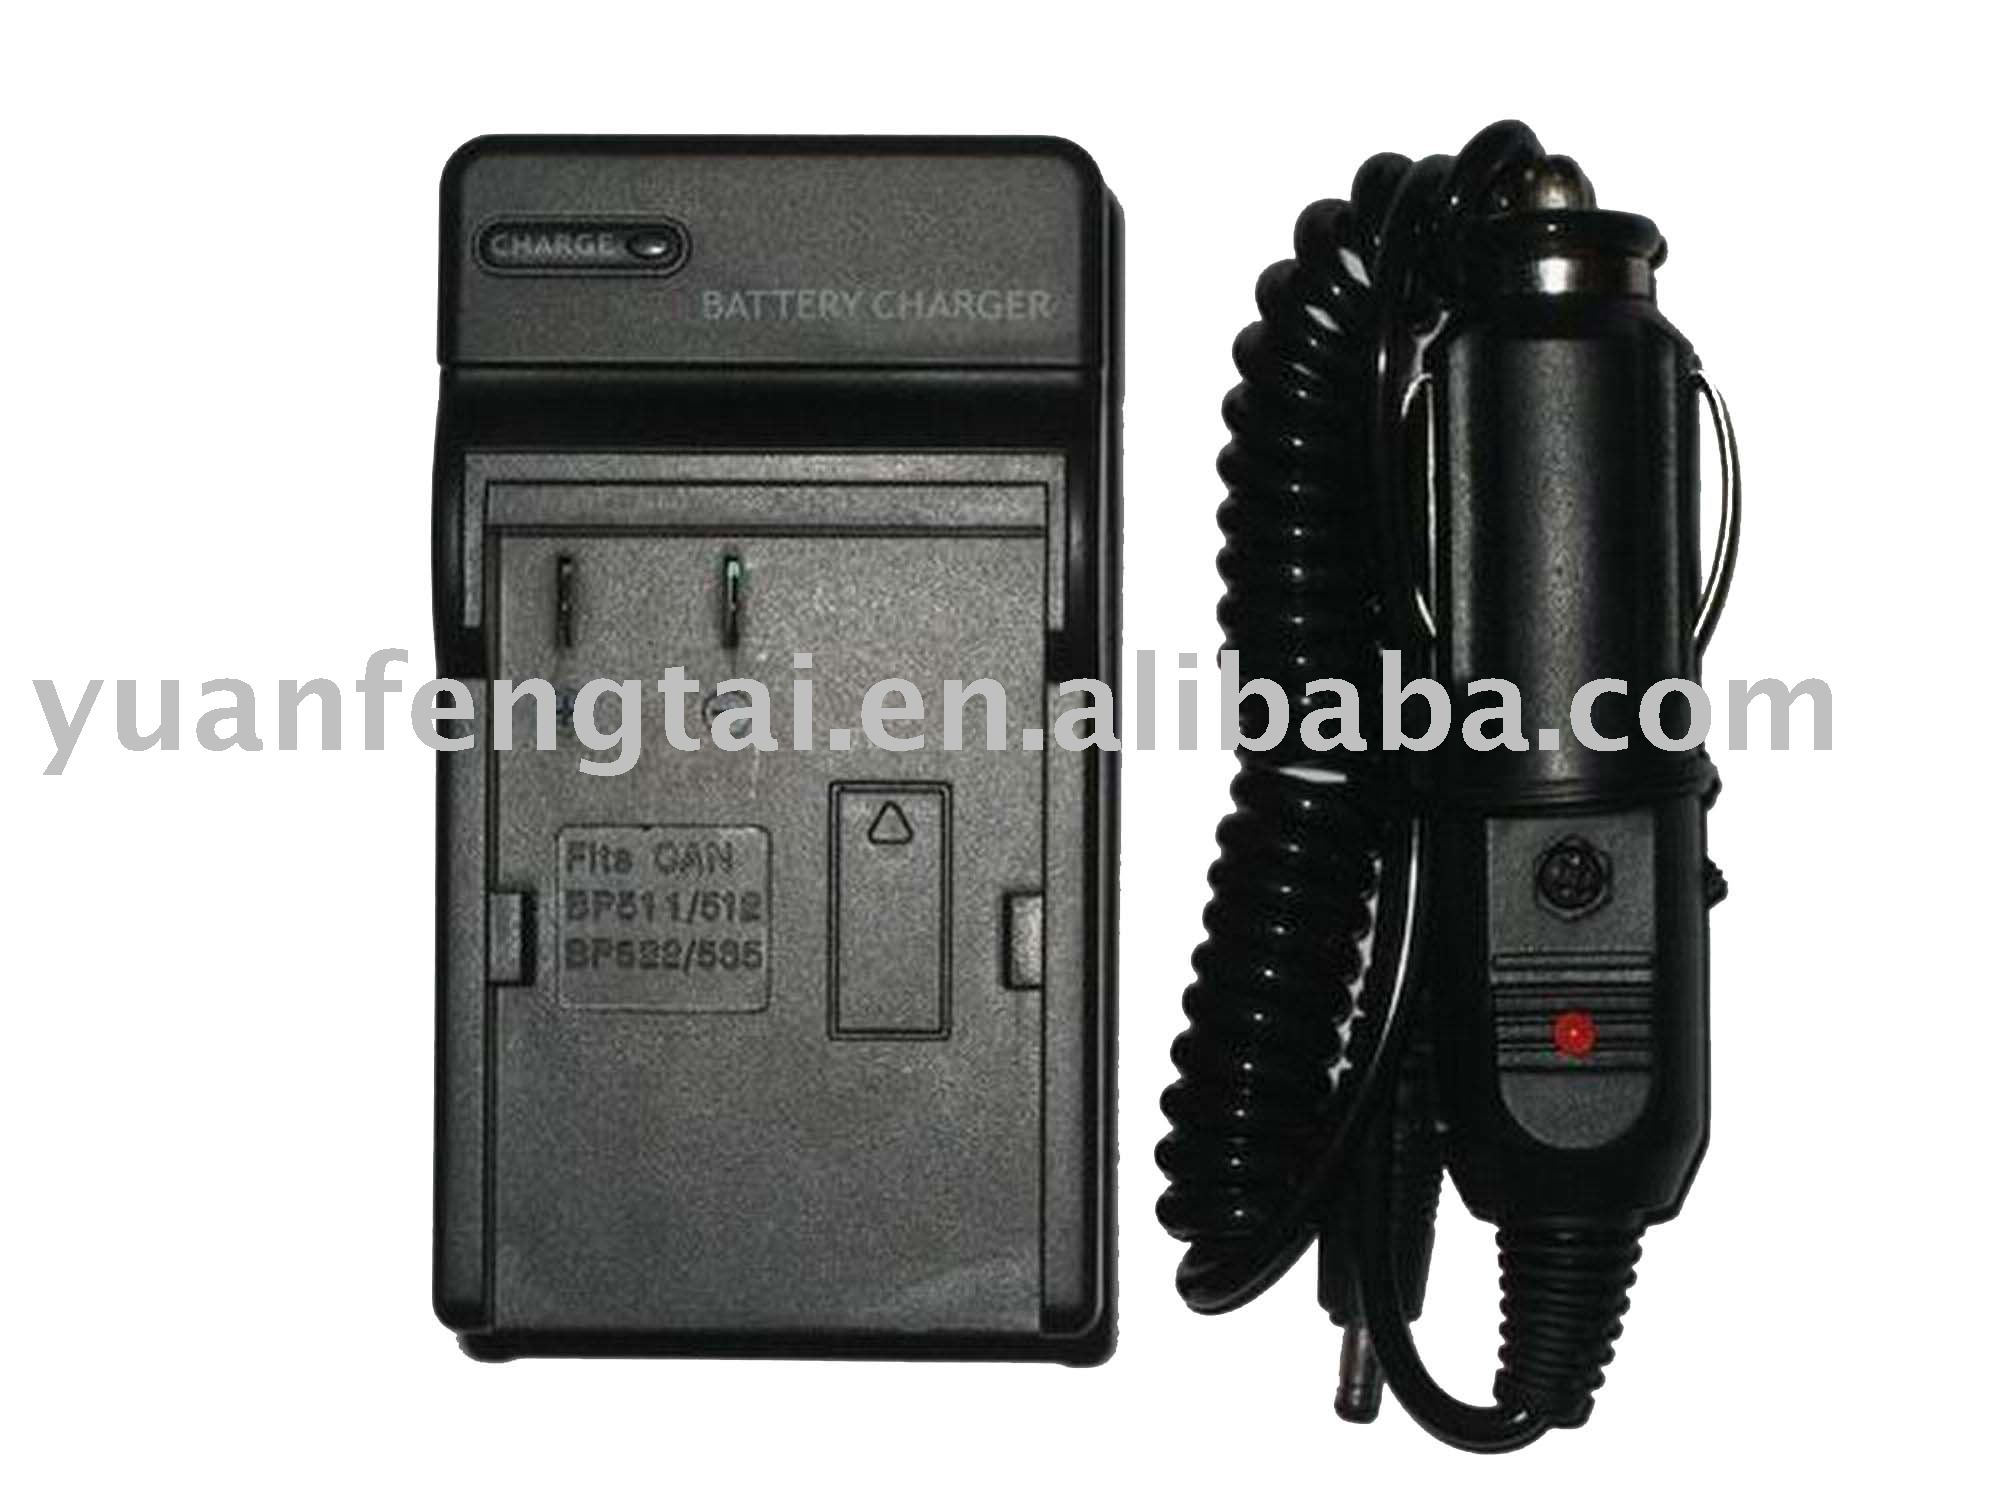 Digital Camera Battery Charger for Kyocera BP-780S